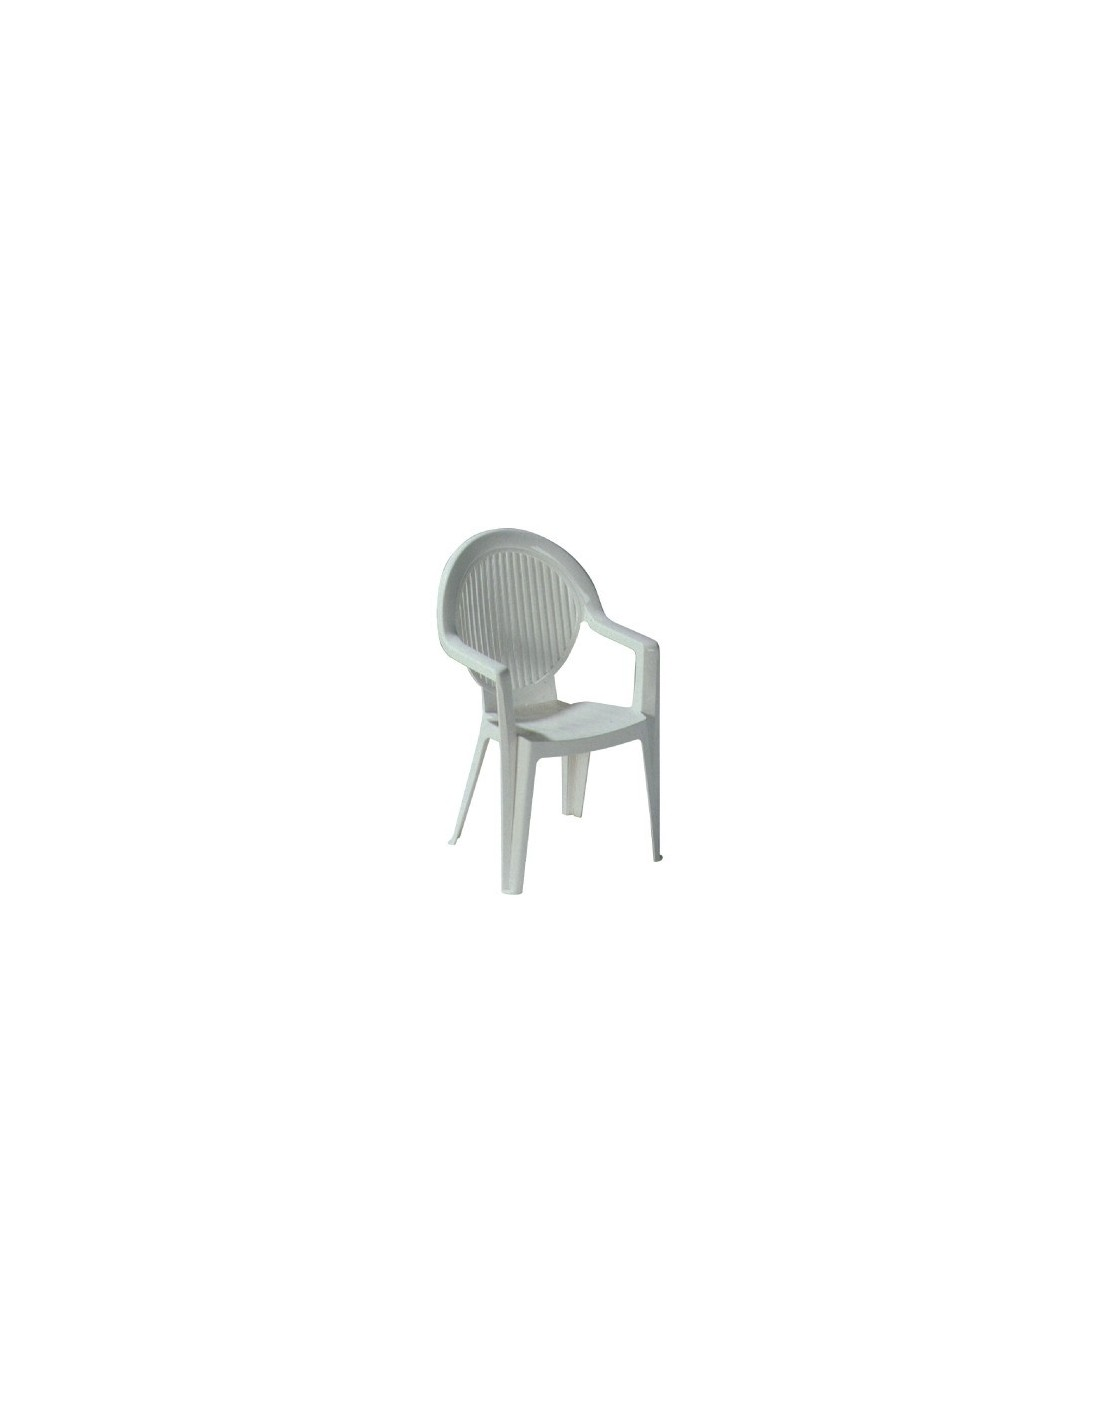 Salon r sine blanche vg salon table 6 fauteuils for Salon resine blanc